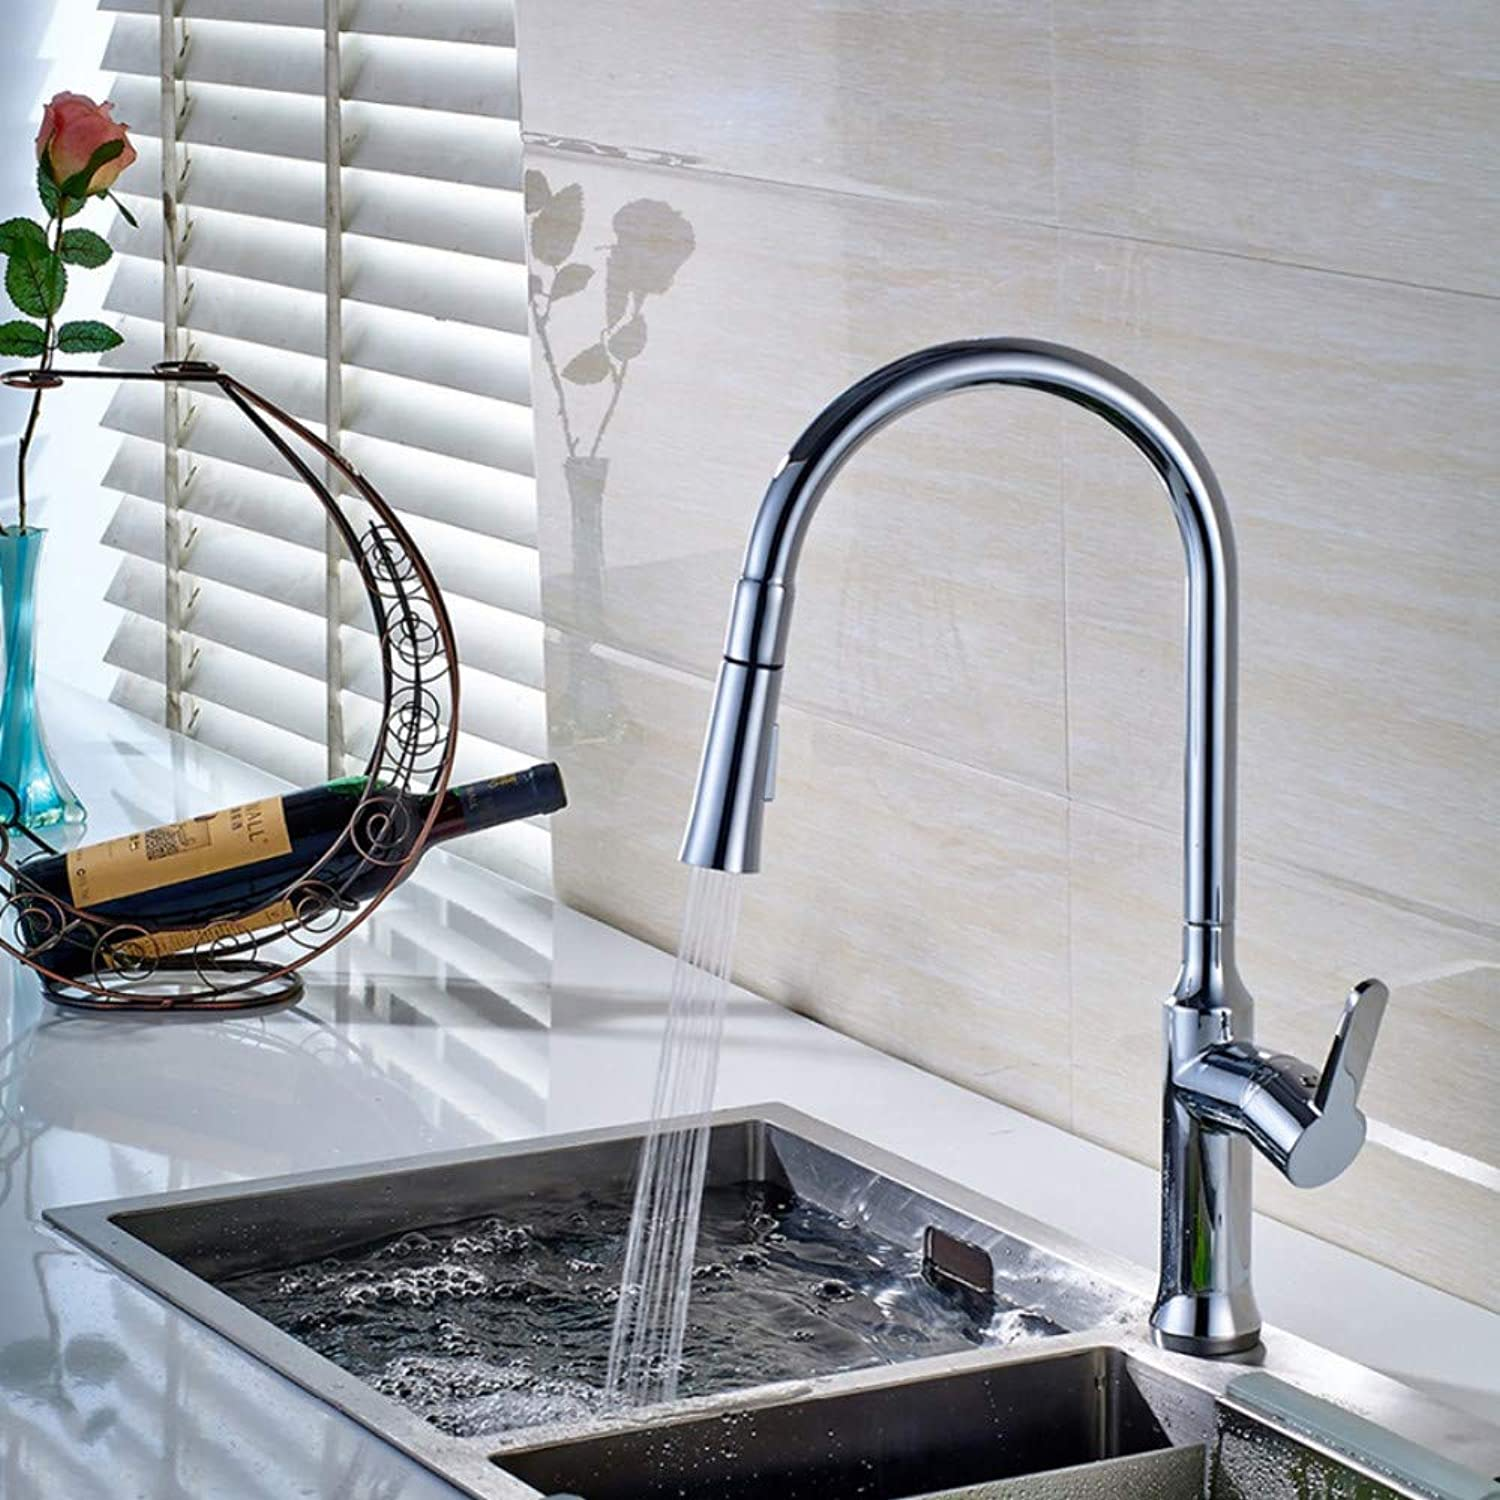 Lddpl Contemporary Kitchen Faucet Copper Chrome redatable Single Handle Single Hole Pull Out Spring Kitchen Sink Tap